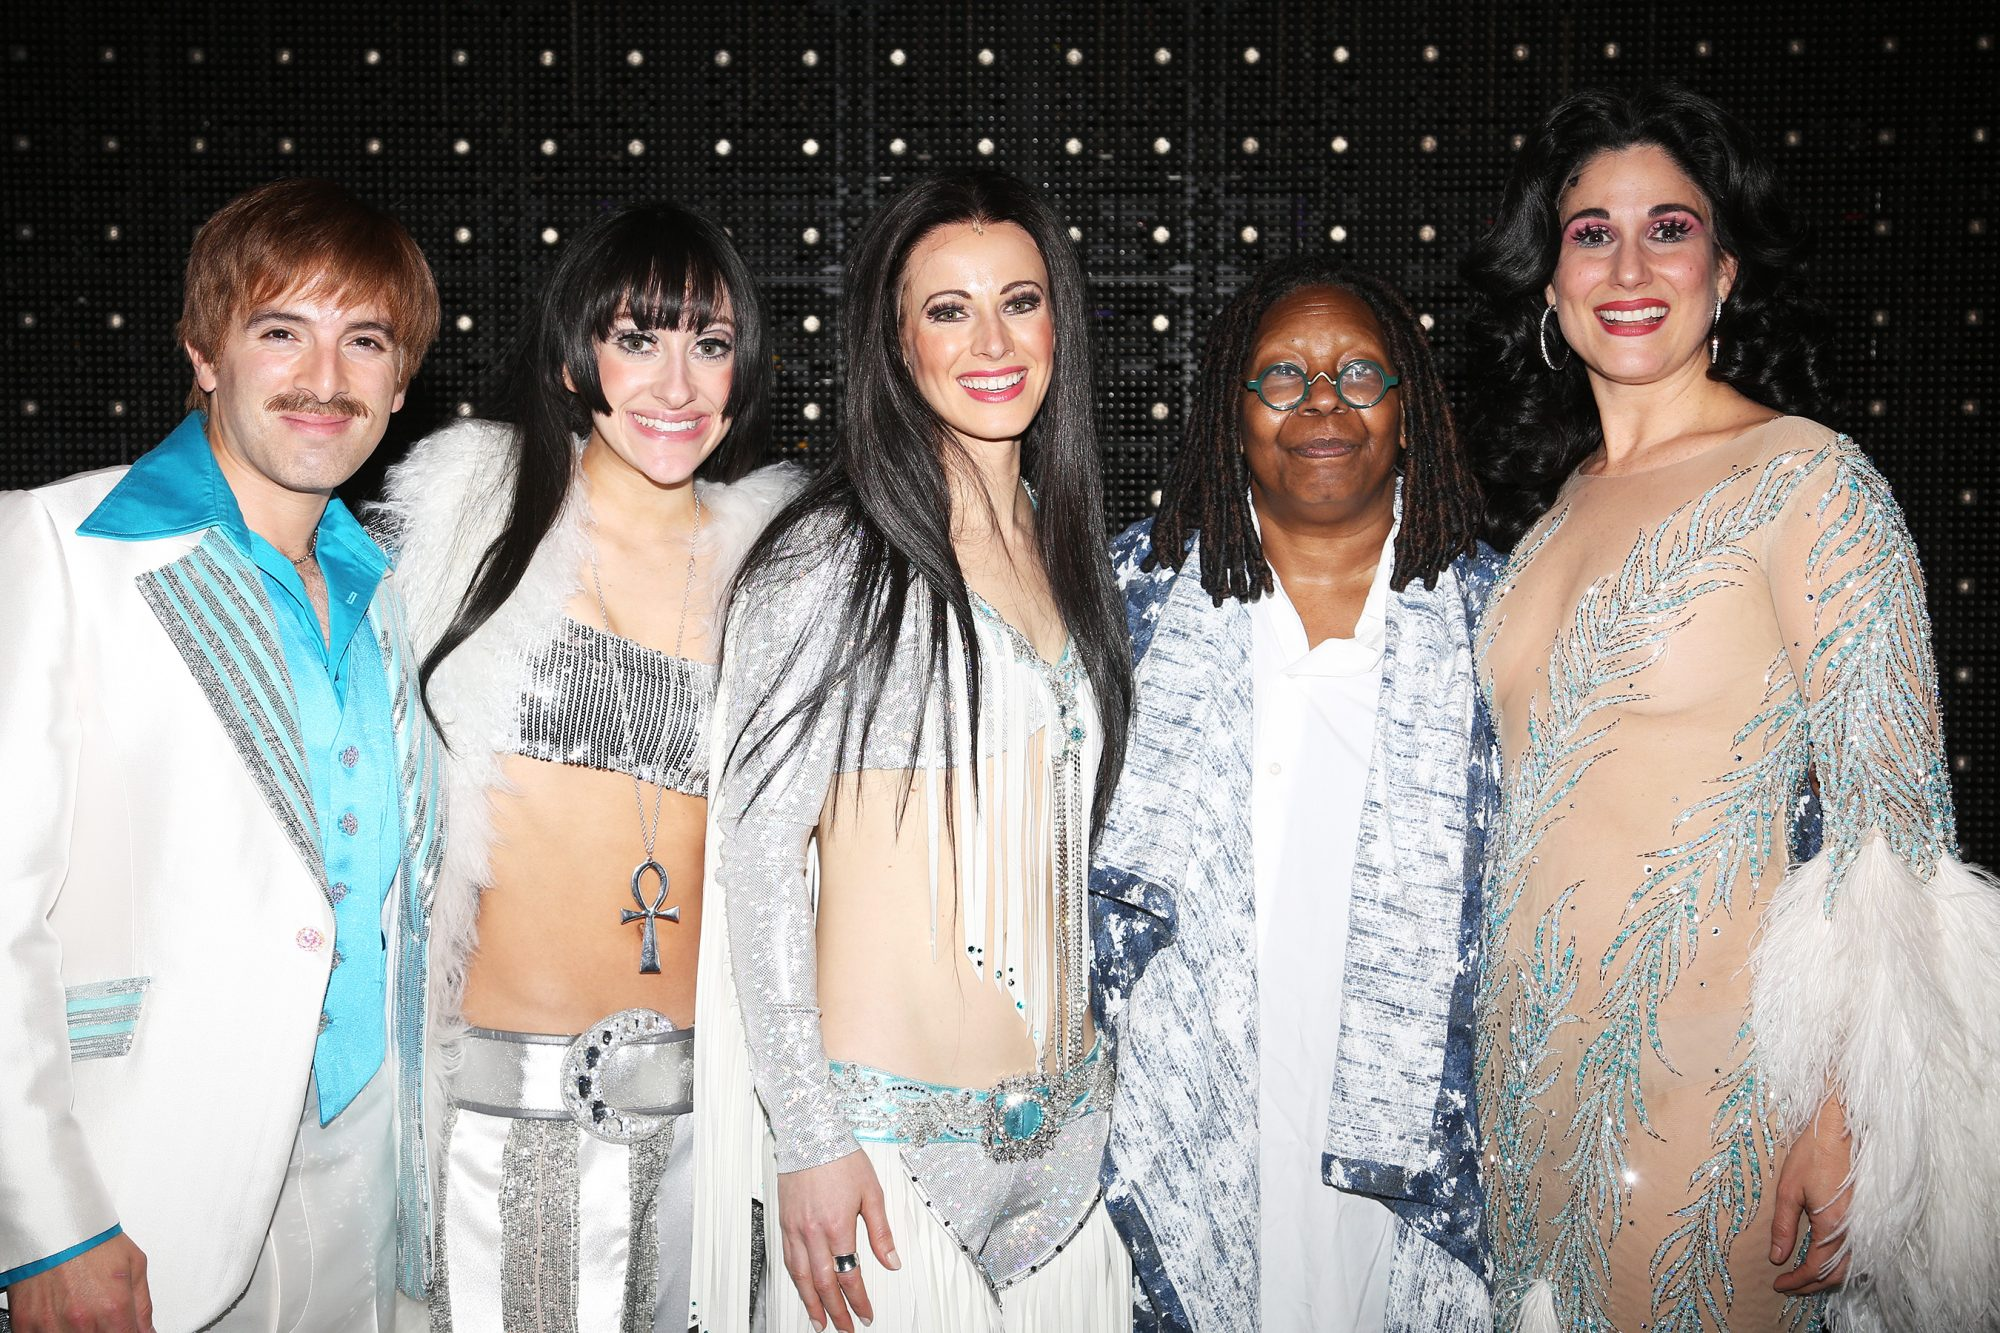 Whoopi Goldberg Visits The Cher Show on Broadway